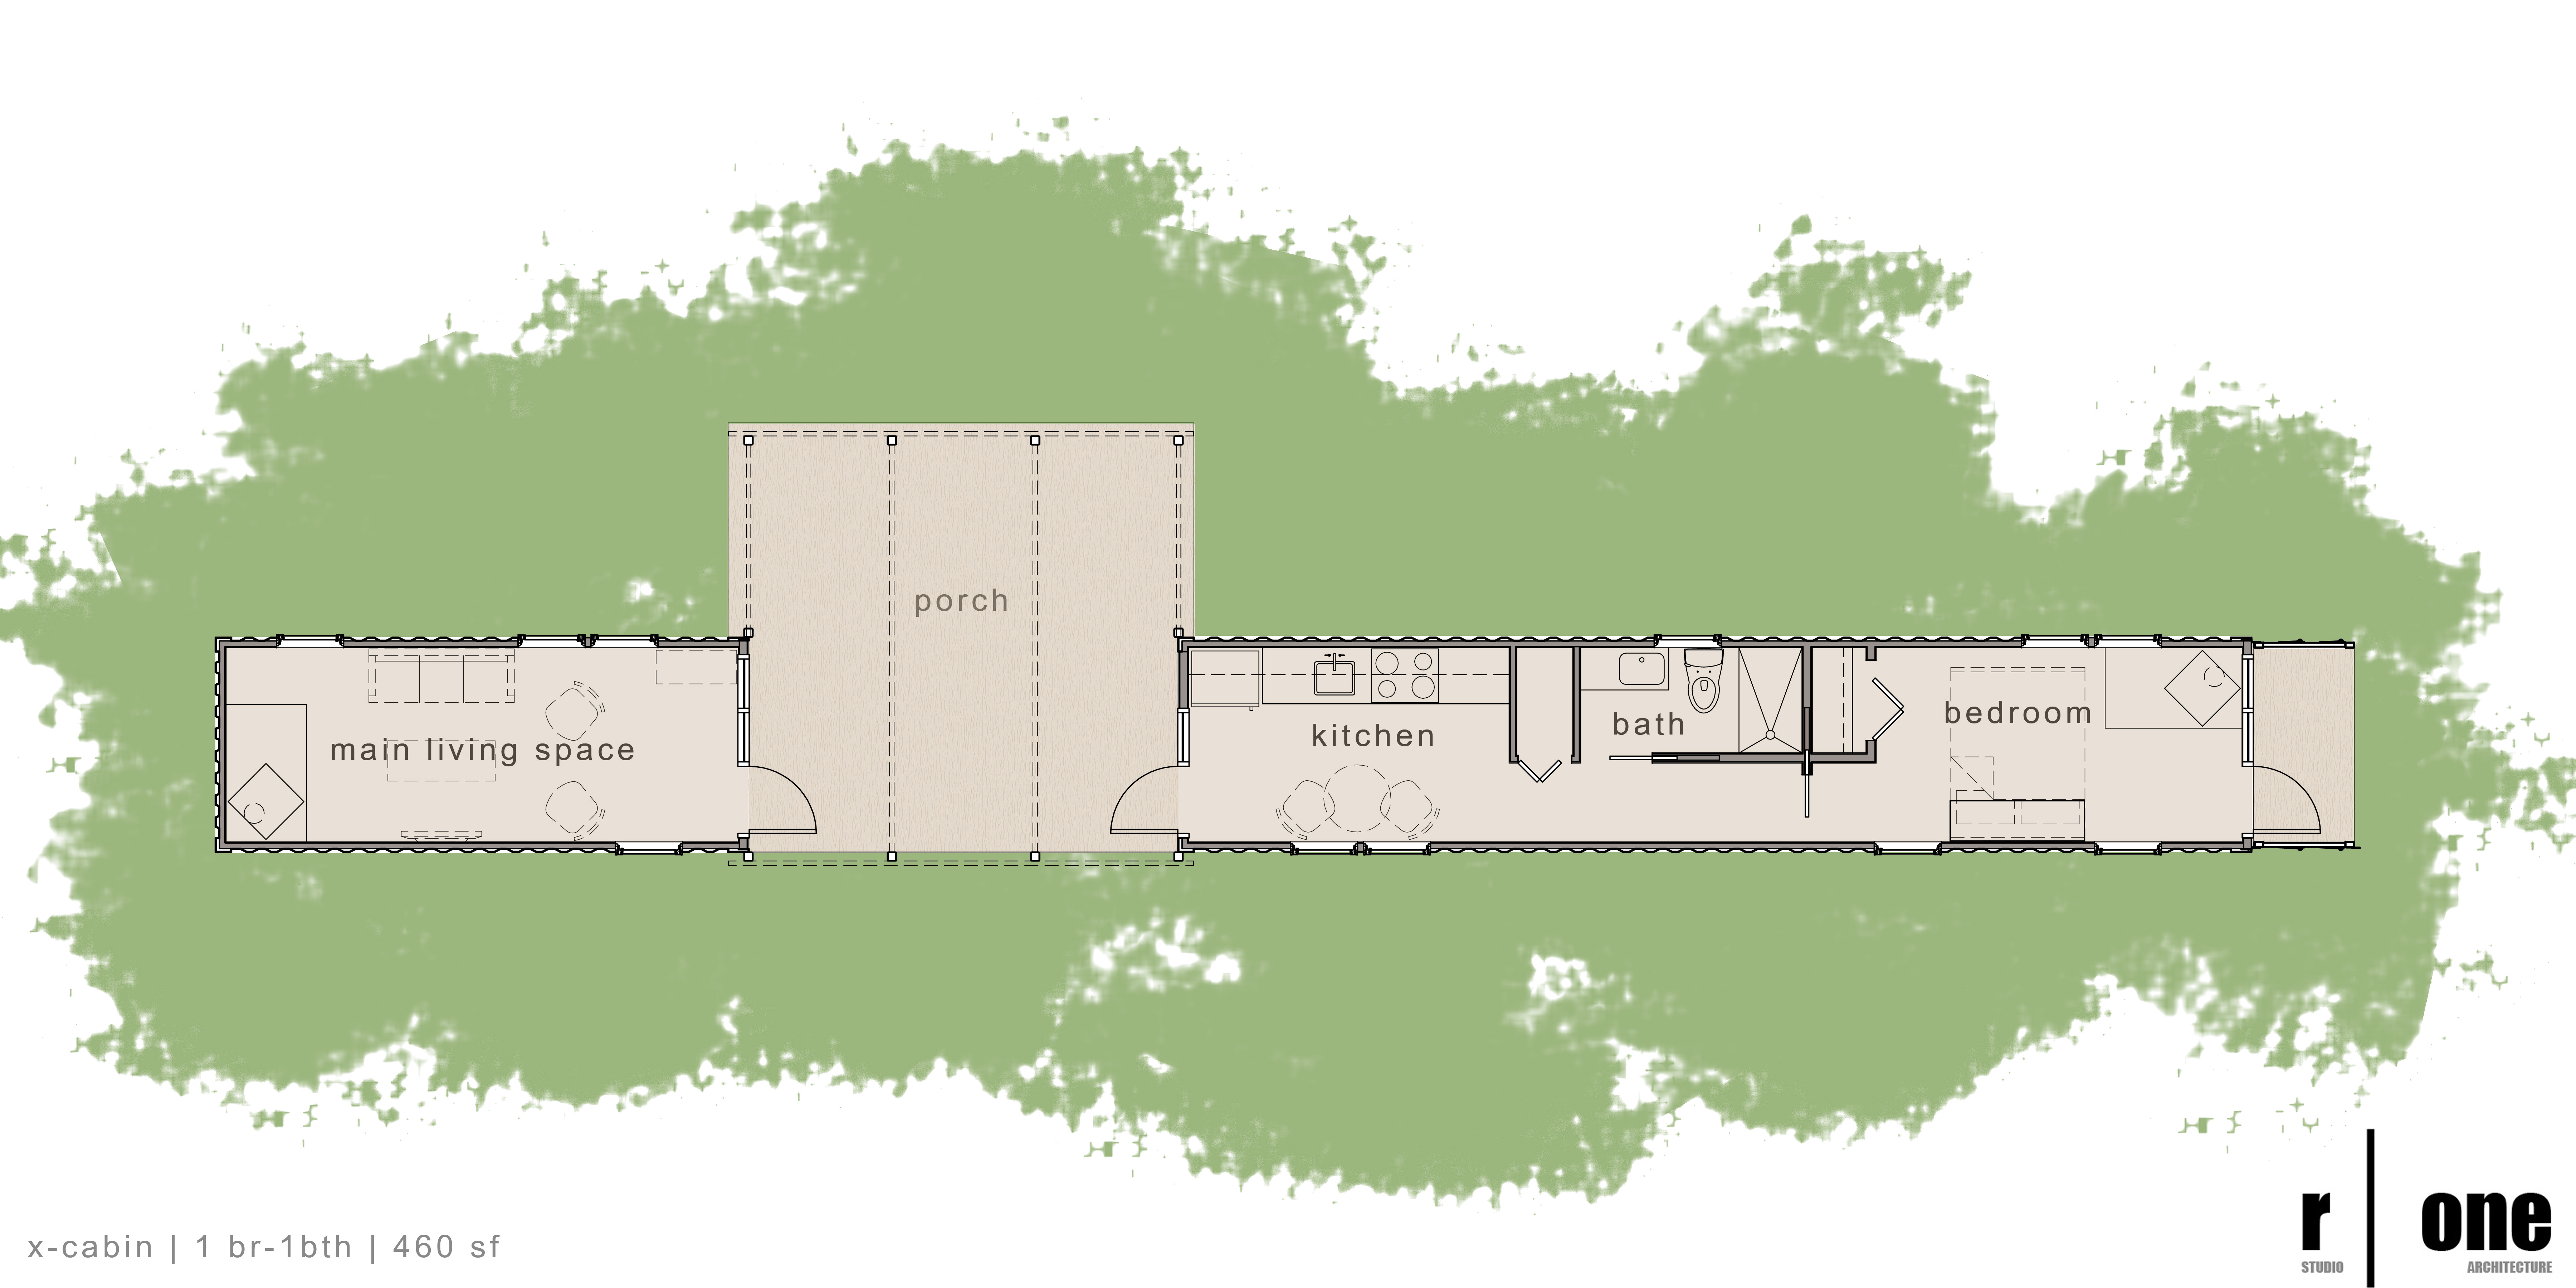 Container Cabins Floor Plans 7200 x 3600